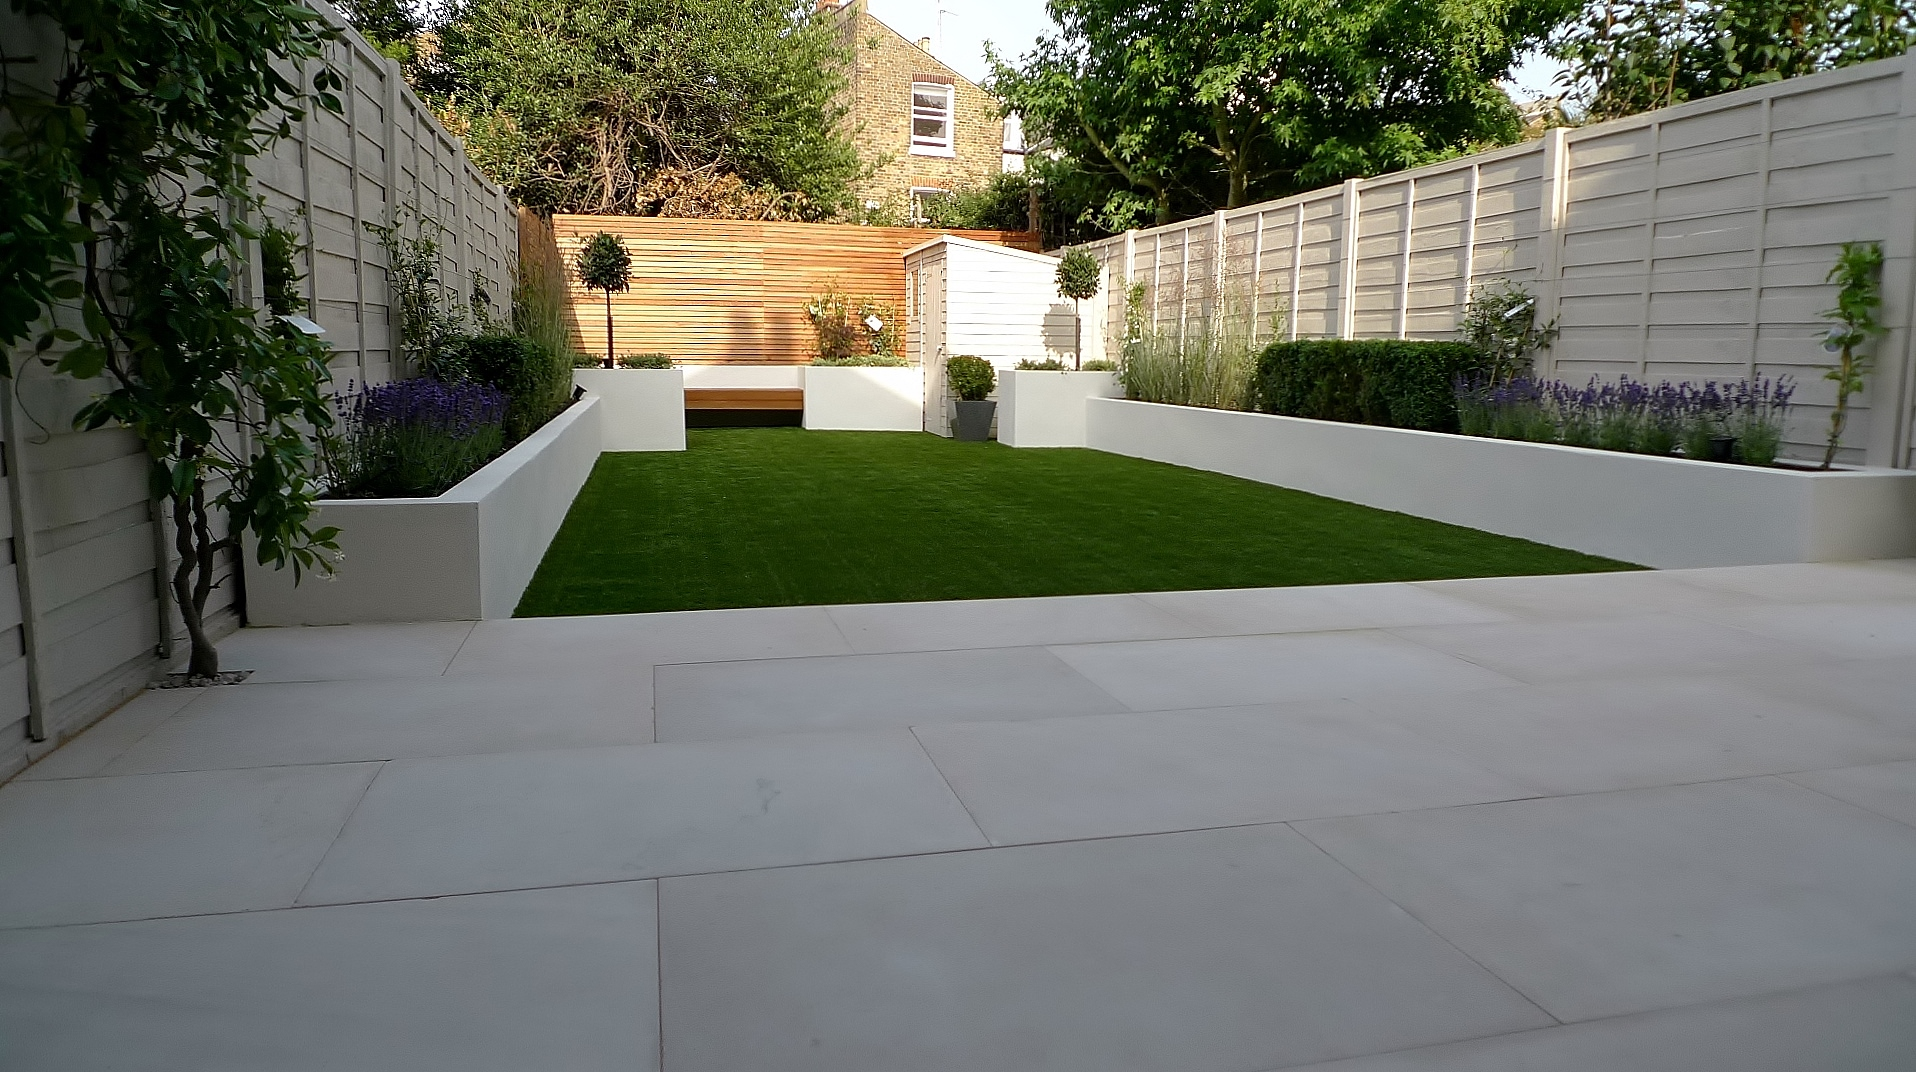 Anewgarden london garden blog for Garden design ideas